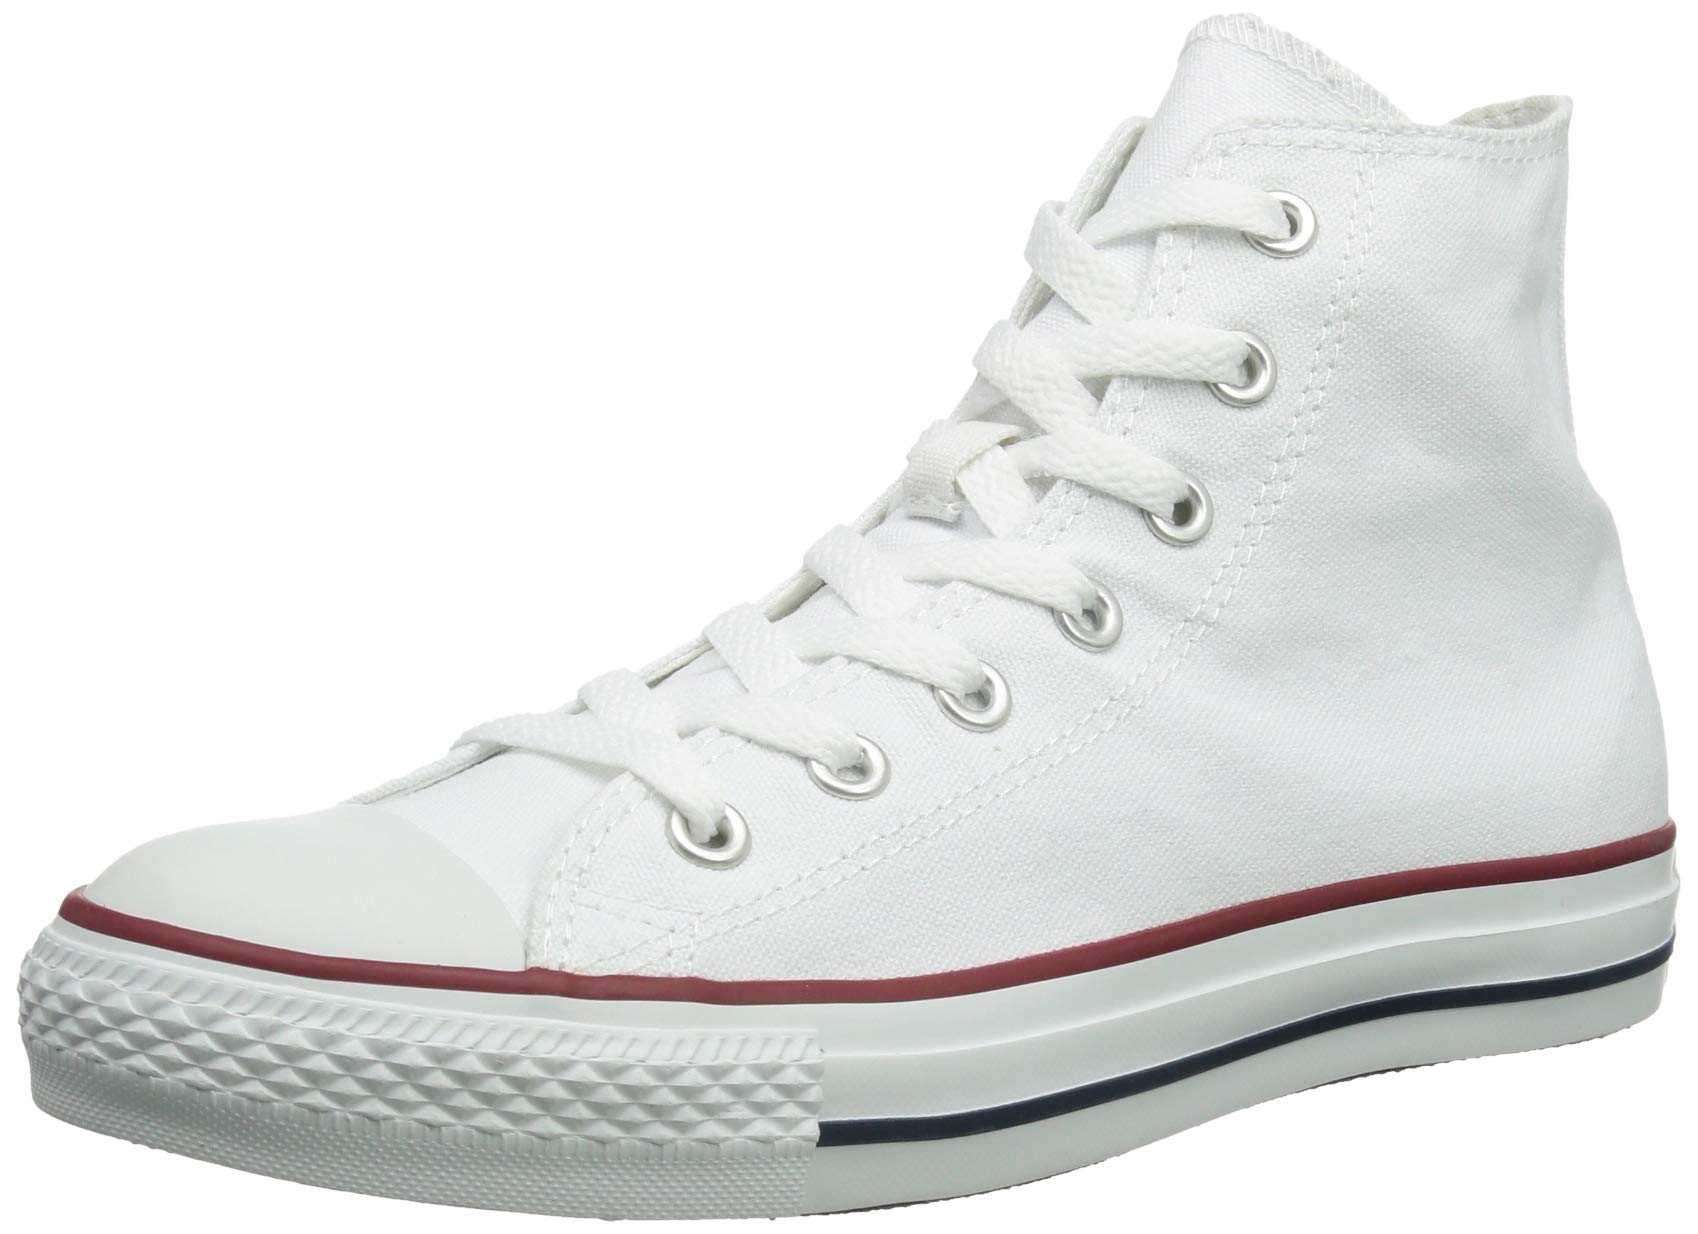 Converse Chuck Taylor All Star HI Sneakers Optical White Mens 11.5 by Converse